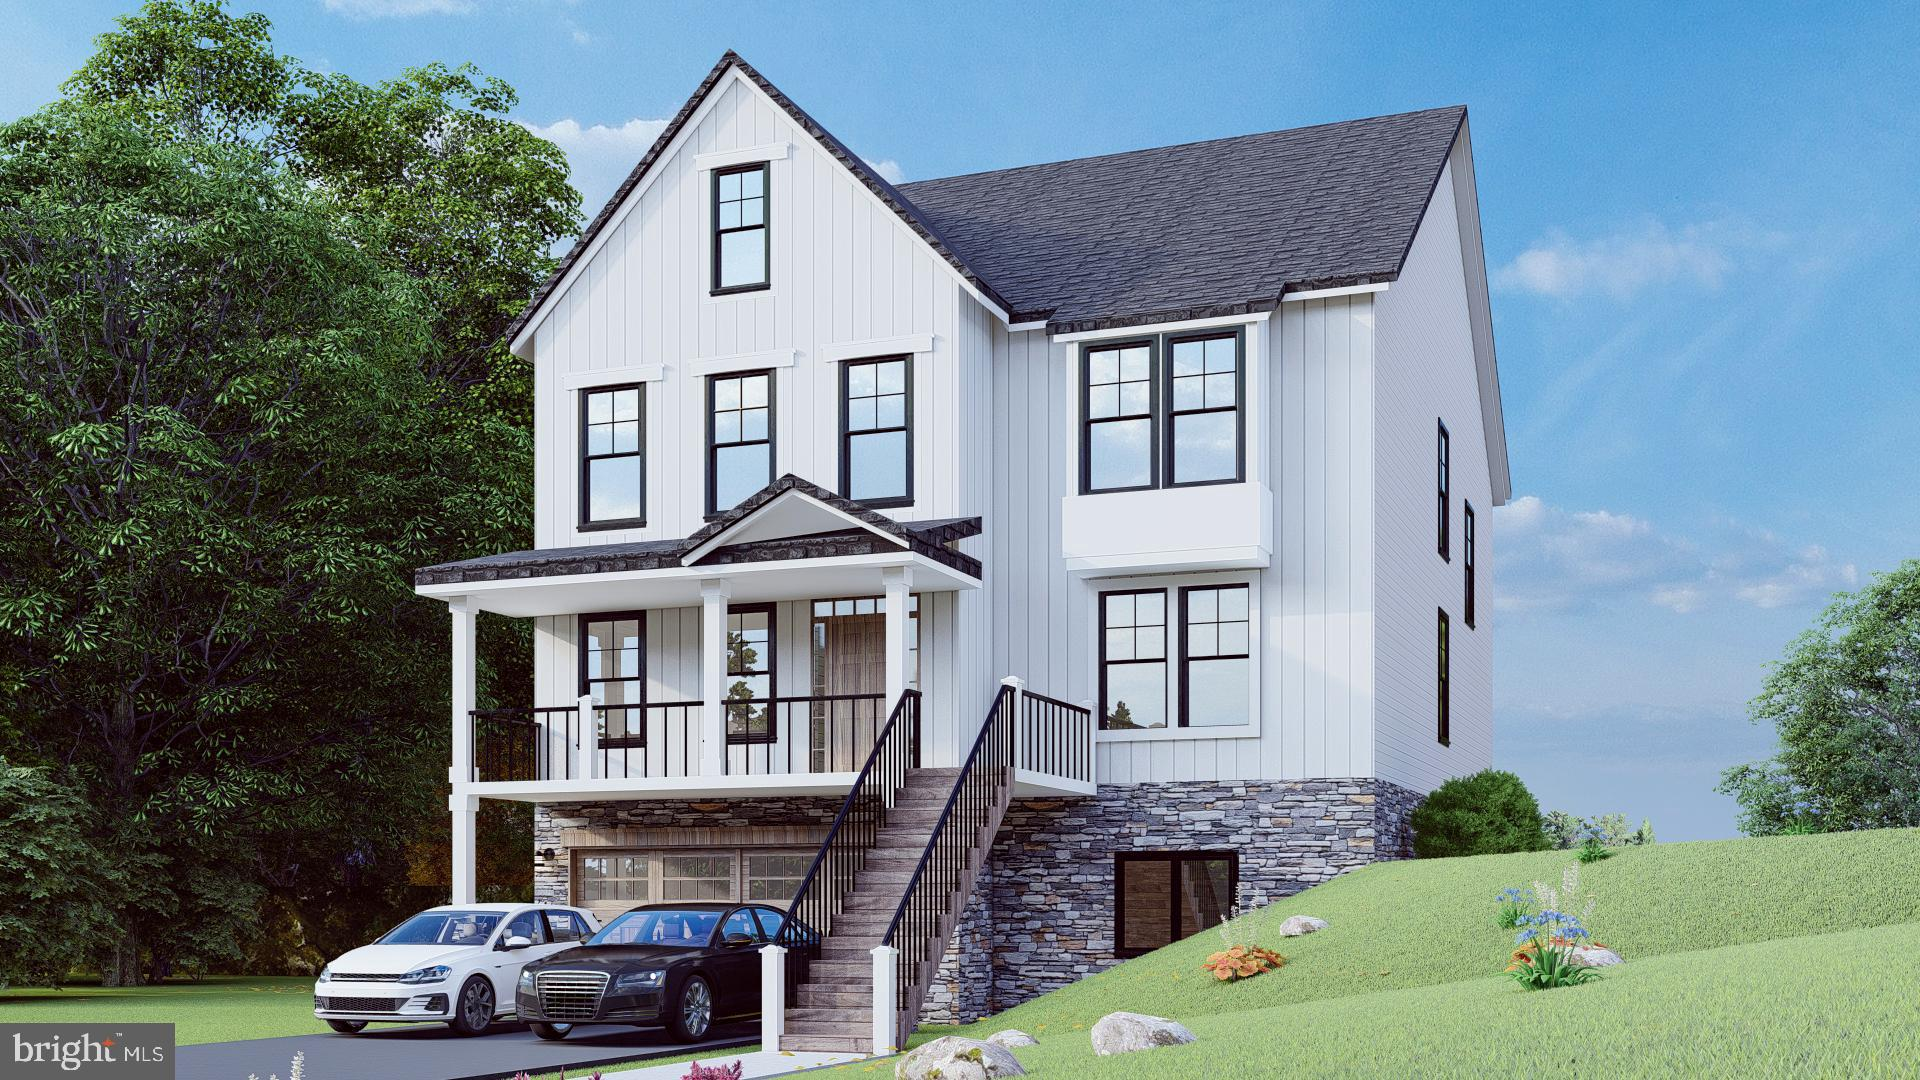 Lot 389 Old County Road, Severna Park, MD 21146